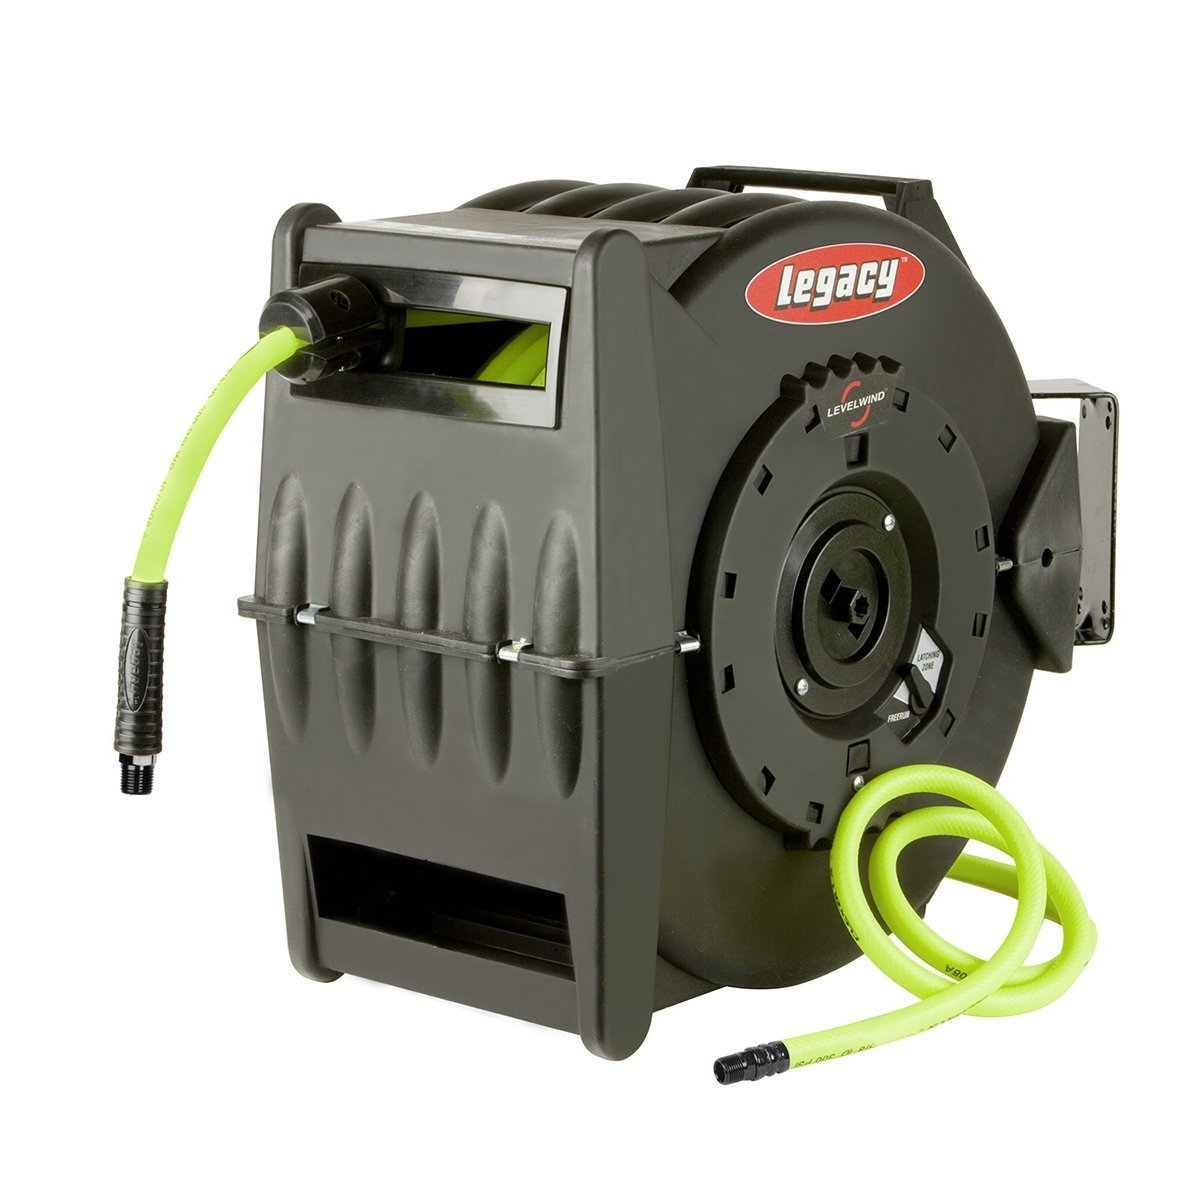 Flexzilla Levelwind Retractable Air Hose Reel, 3/8 in. x 50 ft., Heavy Duty, Lightweight, Hybrid, ZillaGreen - L8305FZ